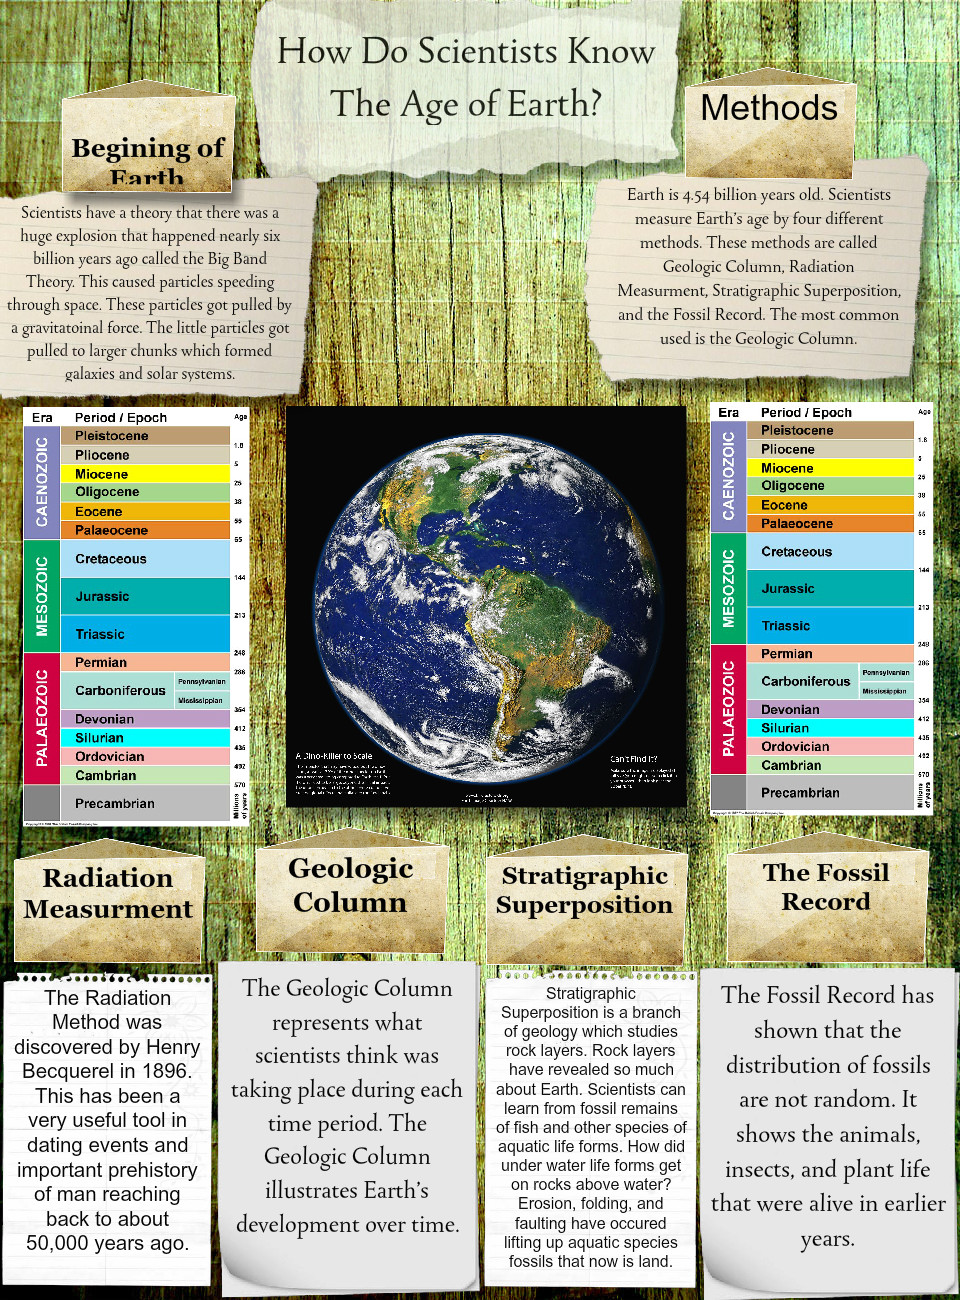 How Do Scientists Know The Age Of Earth?